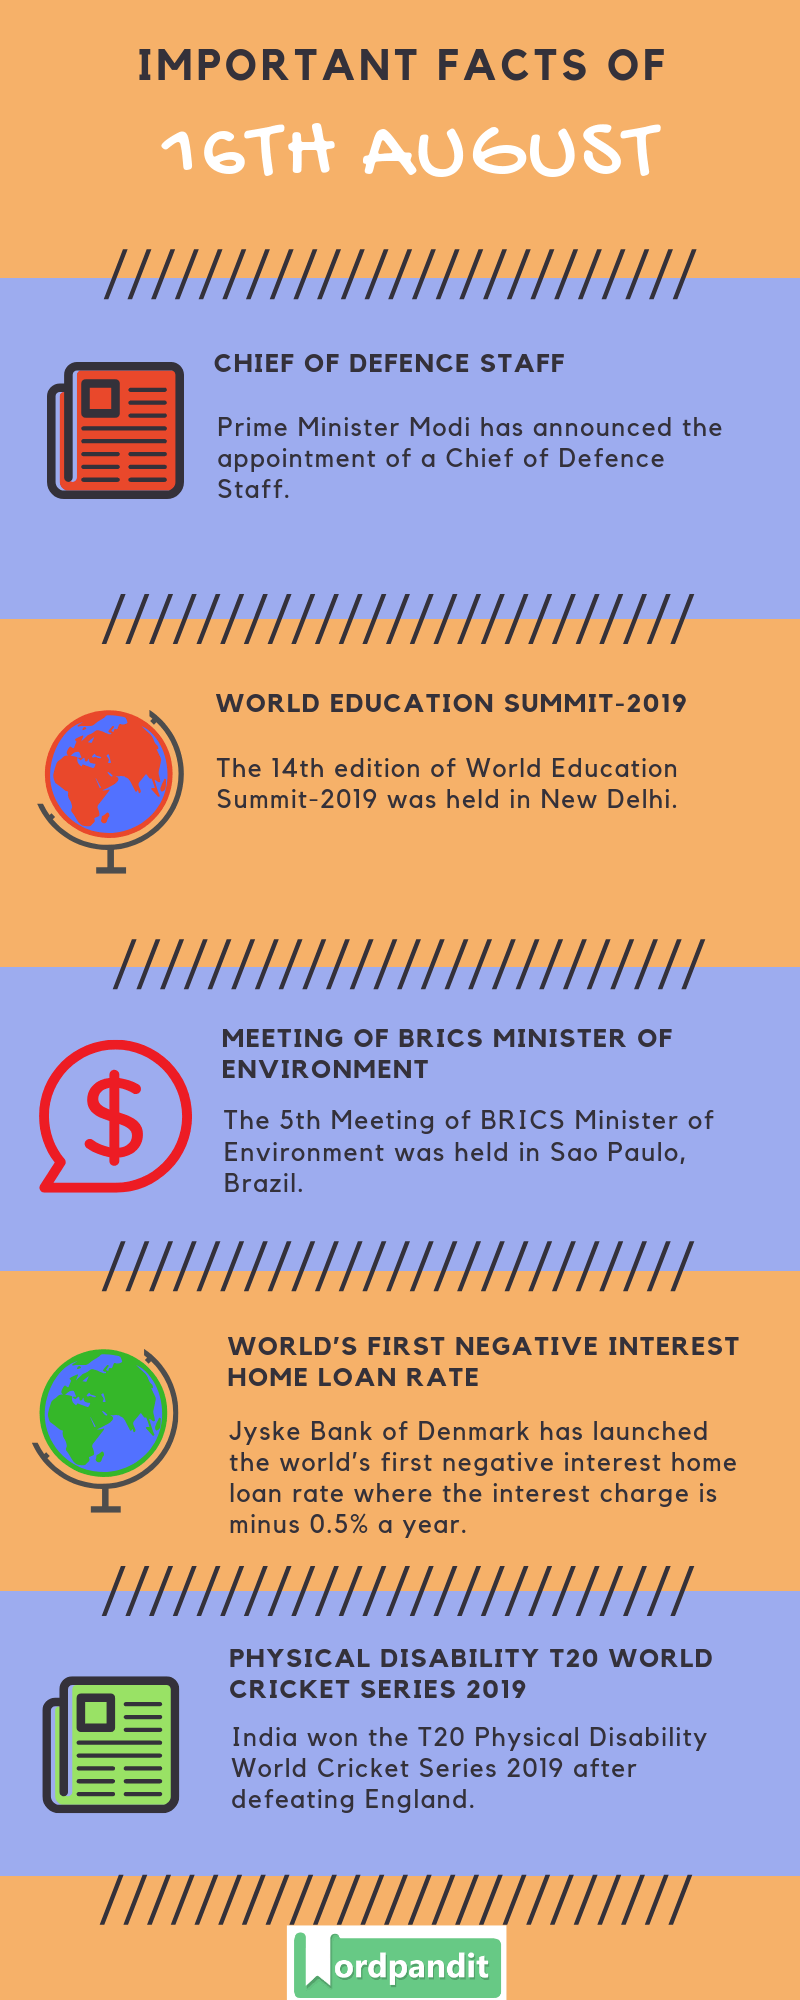 Daily Current Affairs 16 August 2019 Current Affairs Quiz 16 August 2019 Current Affairs Infographic